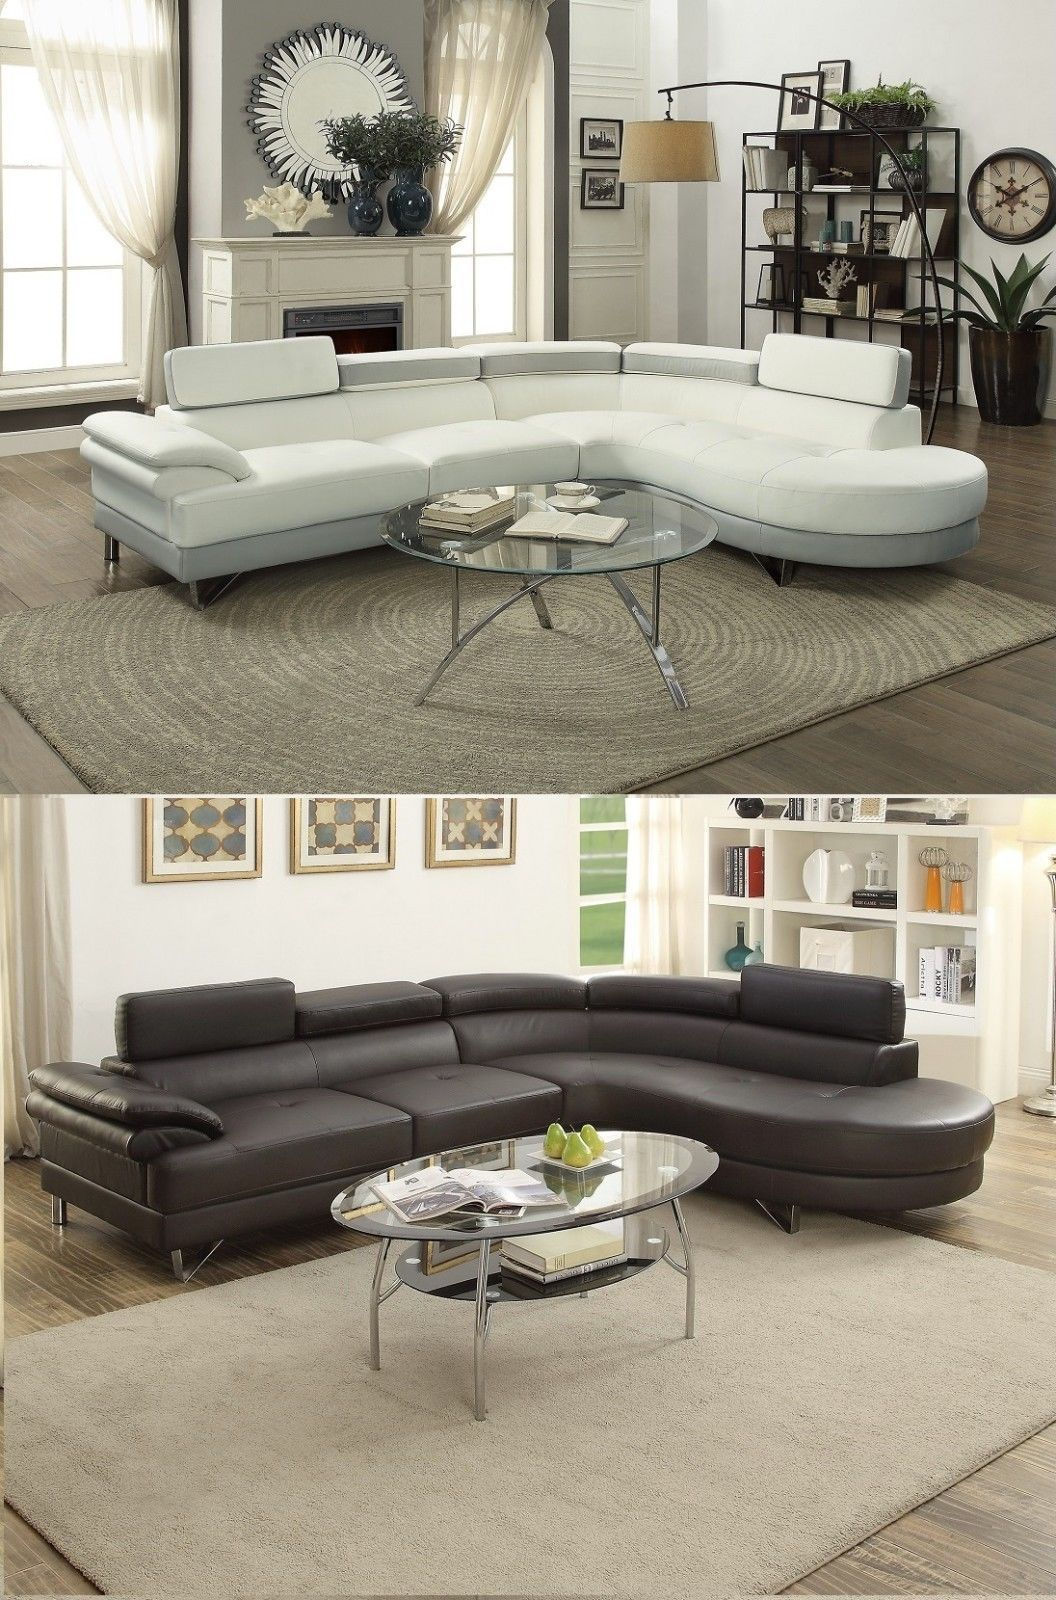 999.99   Classic Living Room 2pcs-Sectional Sofa Chaise Adjustable ...